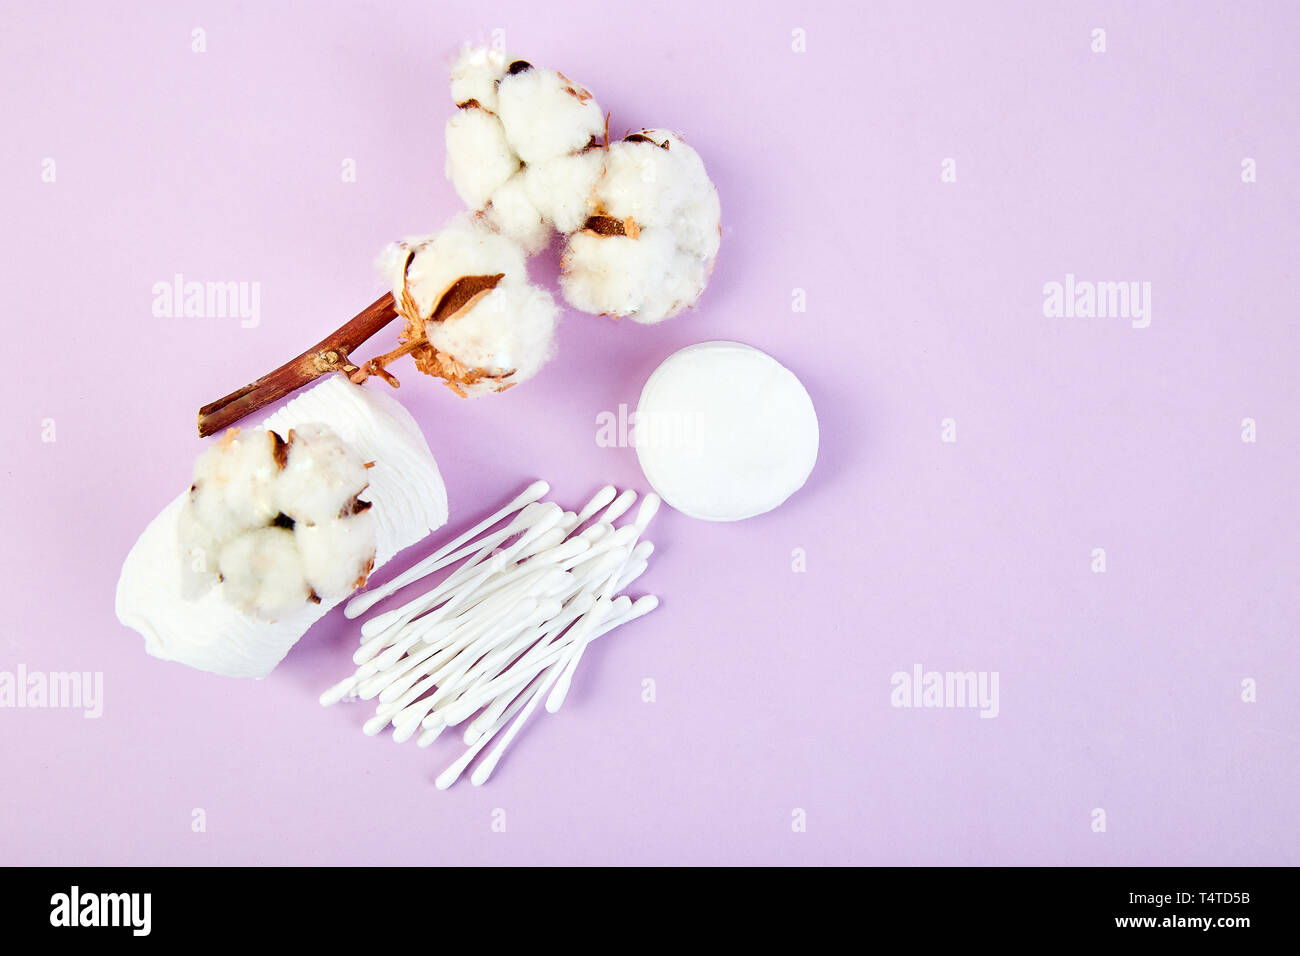 Branch of cotton plant, eared sticks, cotton pads, towel, cosmetic makeup removers tampons, hygienic sanitary swabs  on purple background Top view. Sp Stock Photo